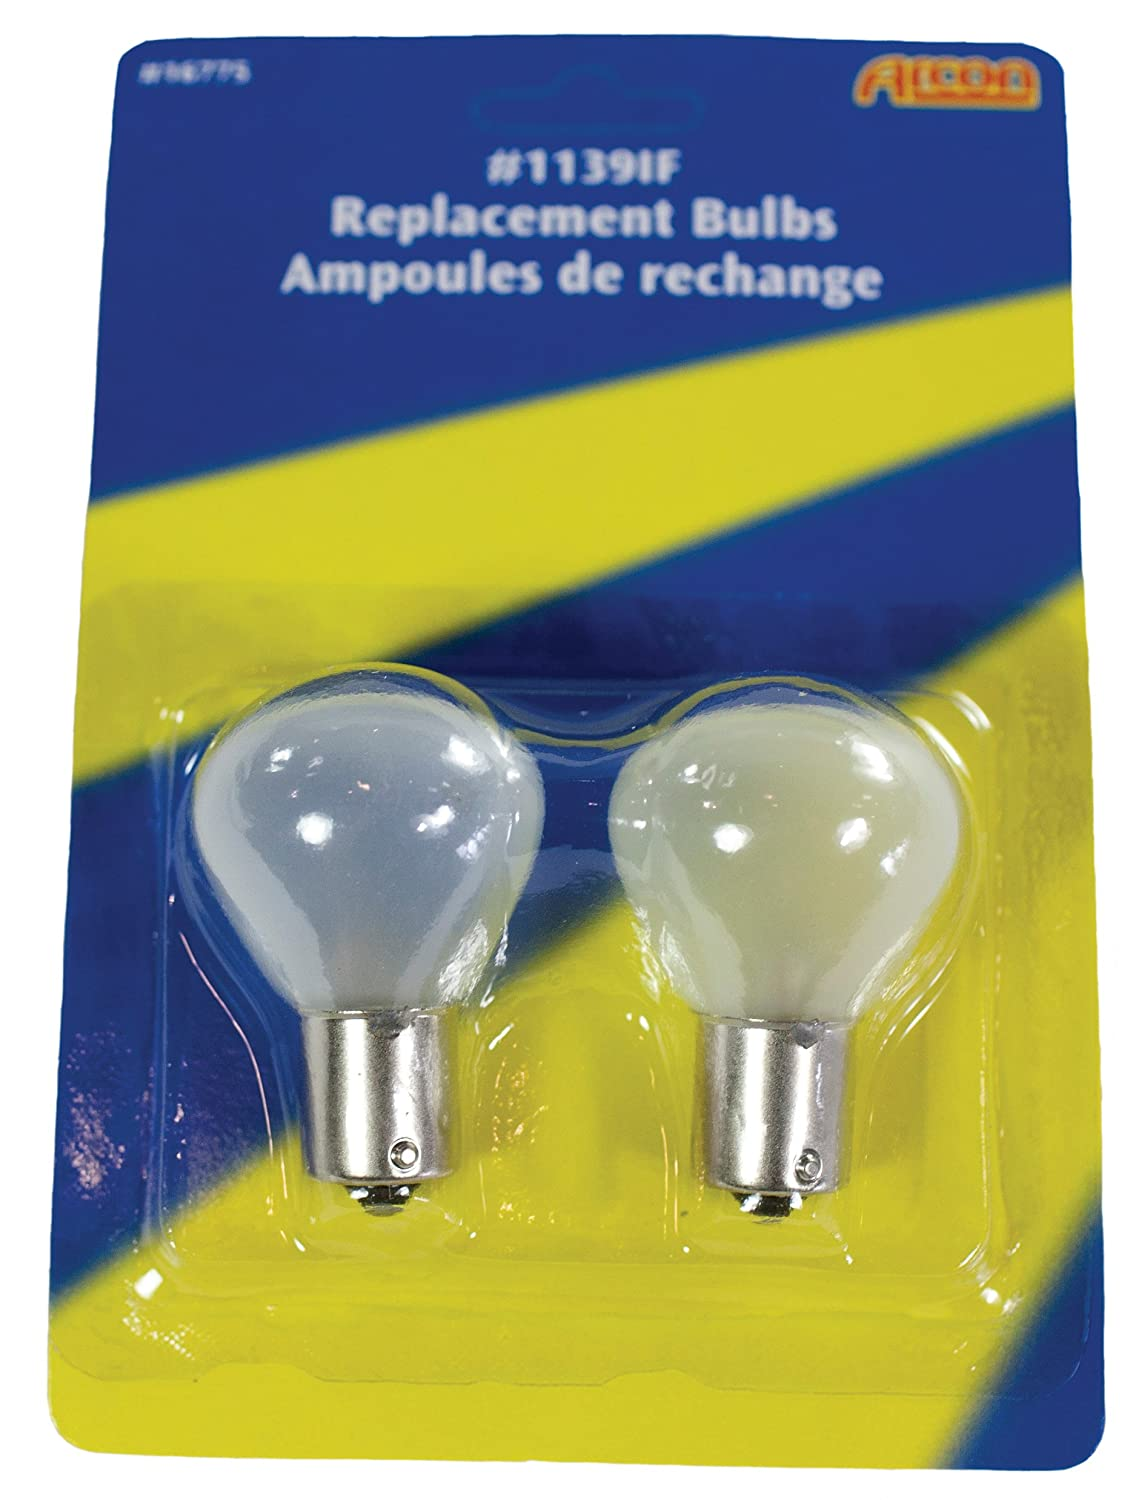 Arcon 16775 Replacement Bulb #1139-IF, (Pack of 2)